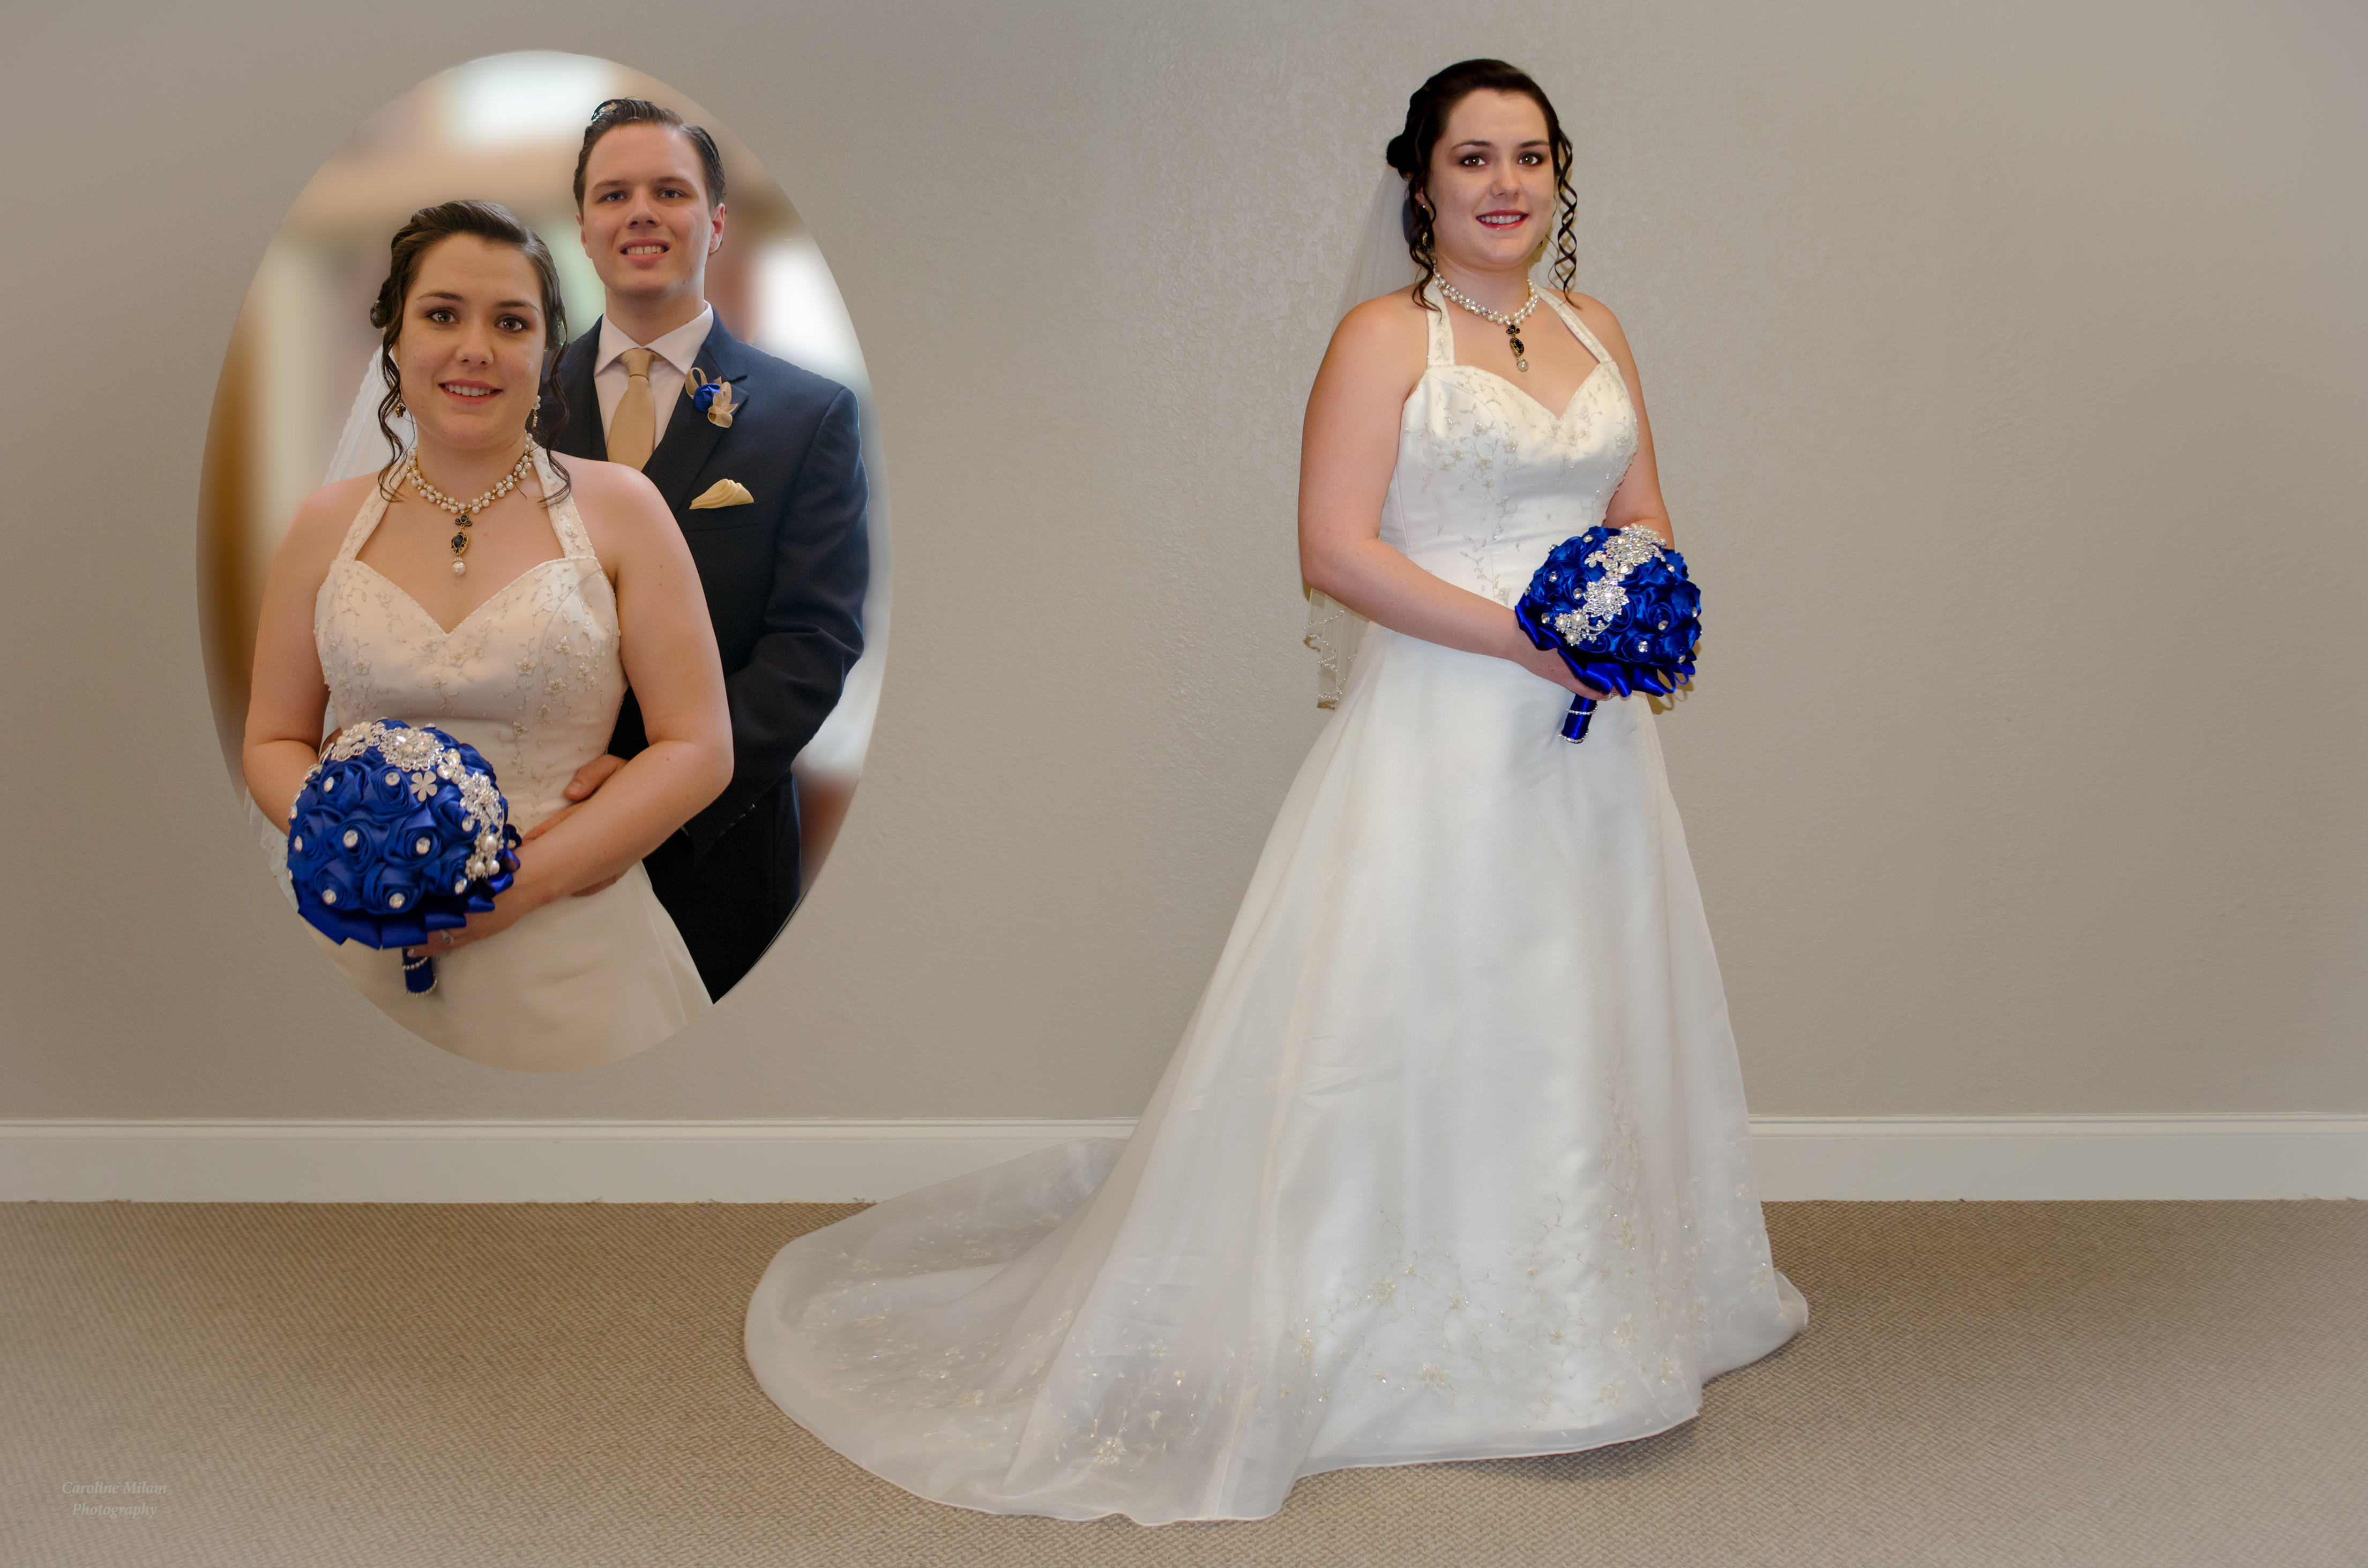 Bride  with Inset Image